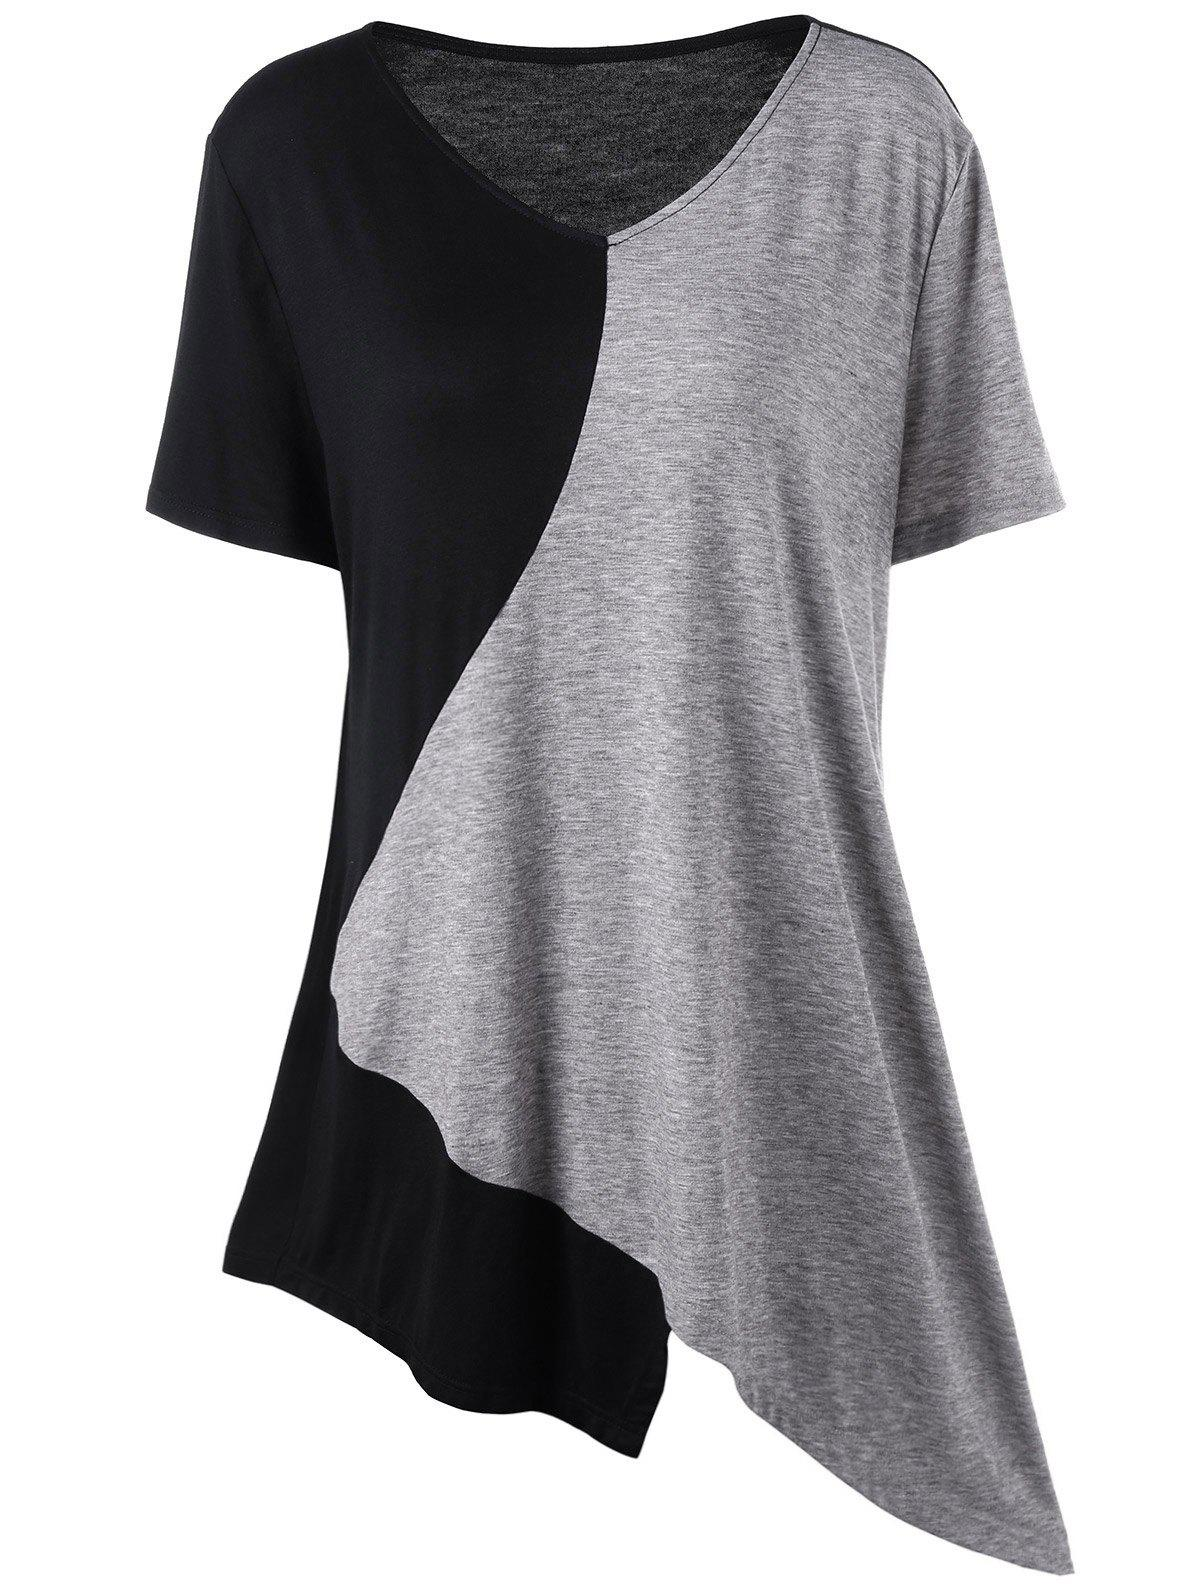 0f180464882 43% OFF   2019 Asymmetrical Color Block Plus Size Long T-shirt ...